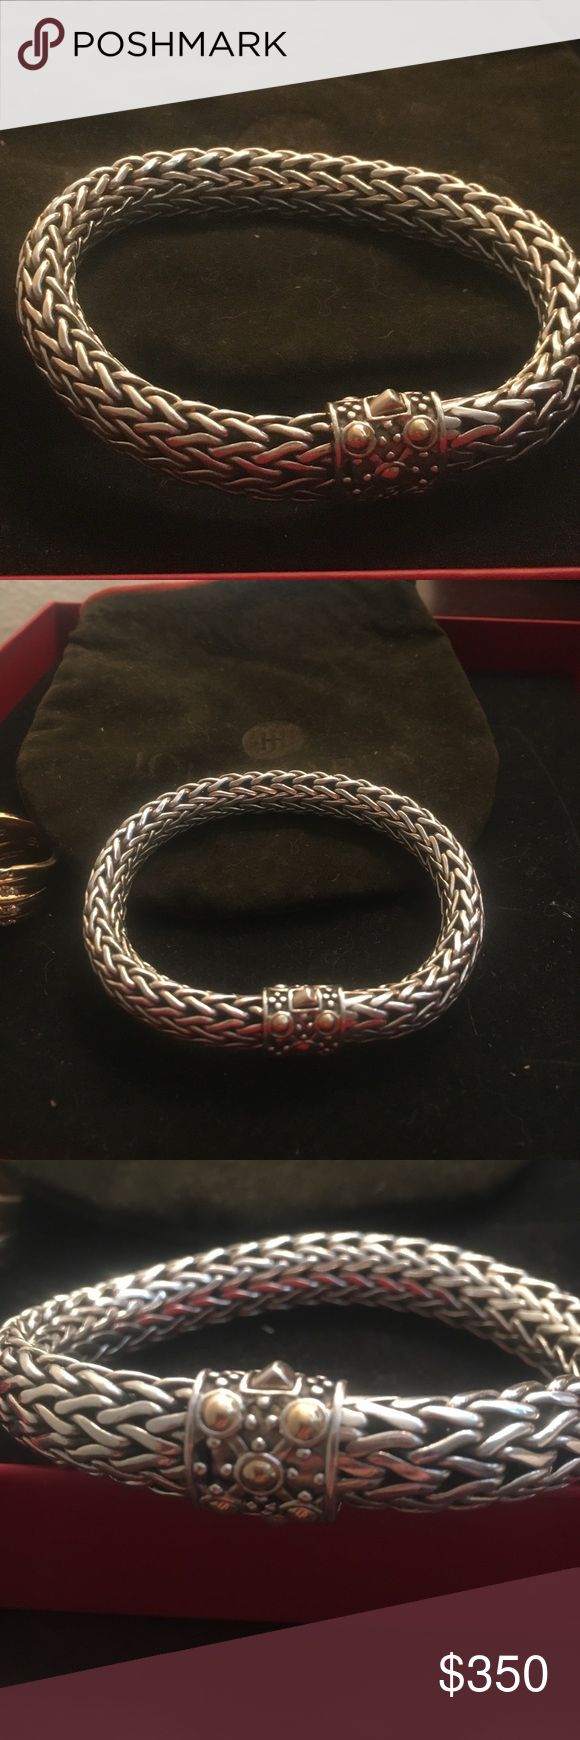 JOHN HARDY 💯% 👌🏼 18K GOLD SILVER LARGE BRACELET Purchased NEIMAN MARCUS DALLAS TEXAS LAST FALL!! May be able to find RECEIPT !!  ITS ONE OF THE LARGER THICKNESS!! Hard to see dimensions in pictures.  Paid 900 and was discounted from 1200. Lovely. Comes w bag!! 🎉🎉🎉🎉OFFERS WELCOME John Hardy Jewelry Bracelets